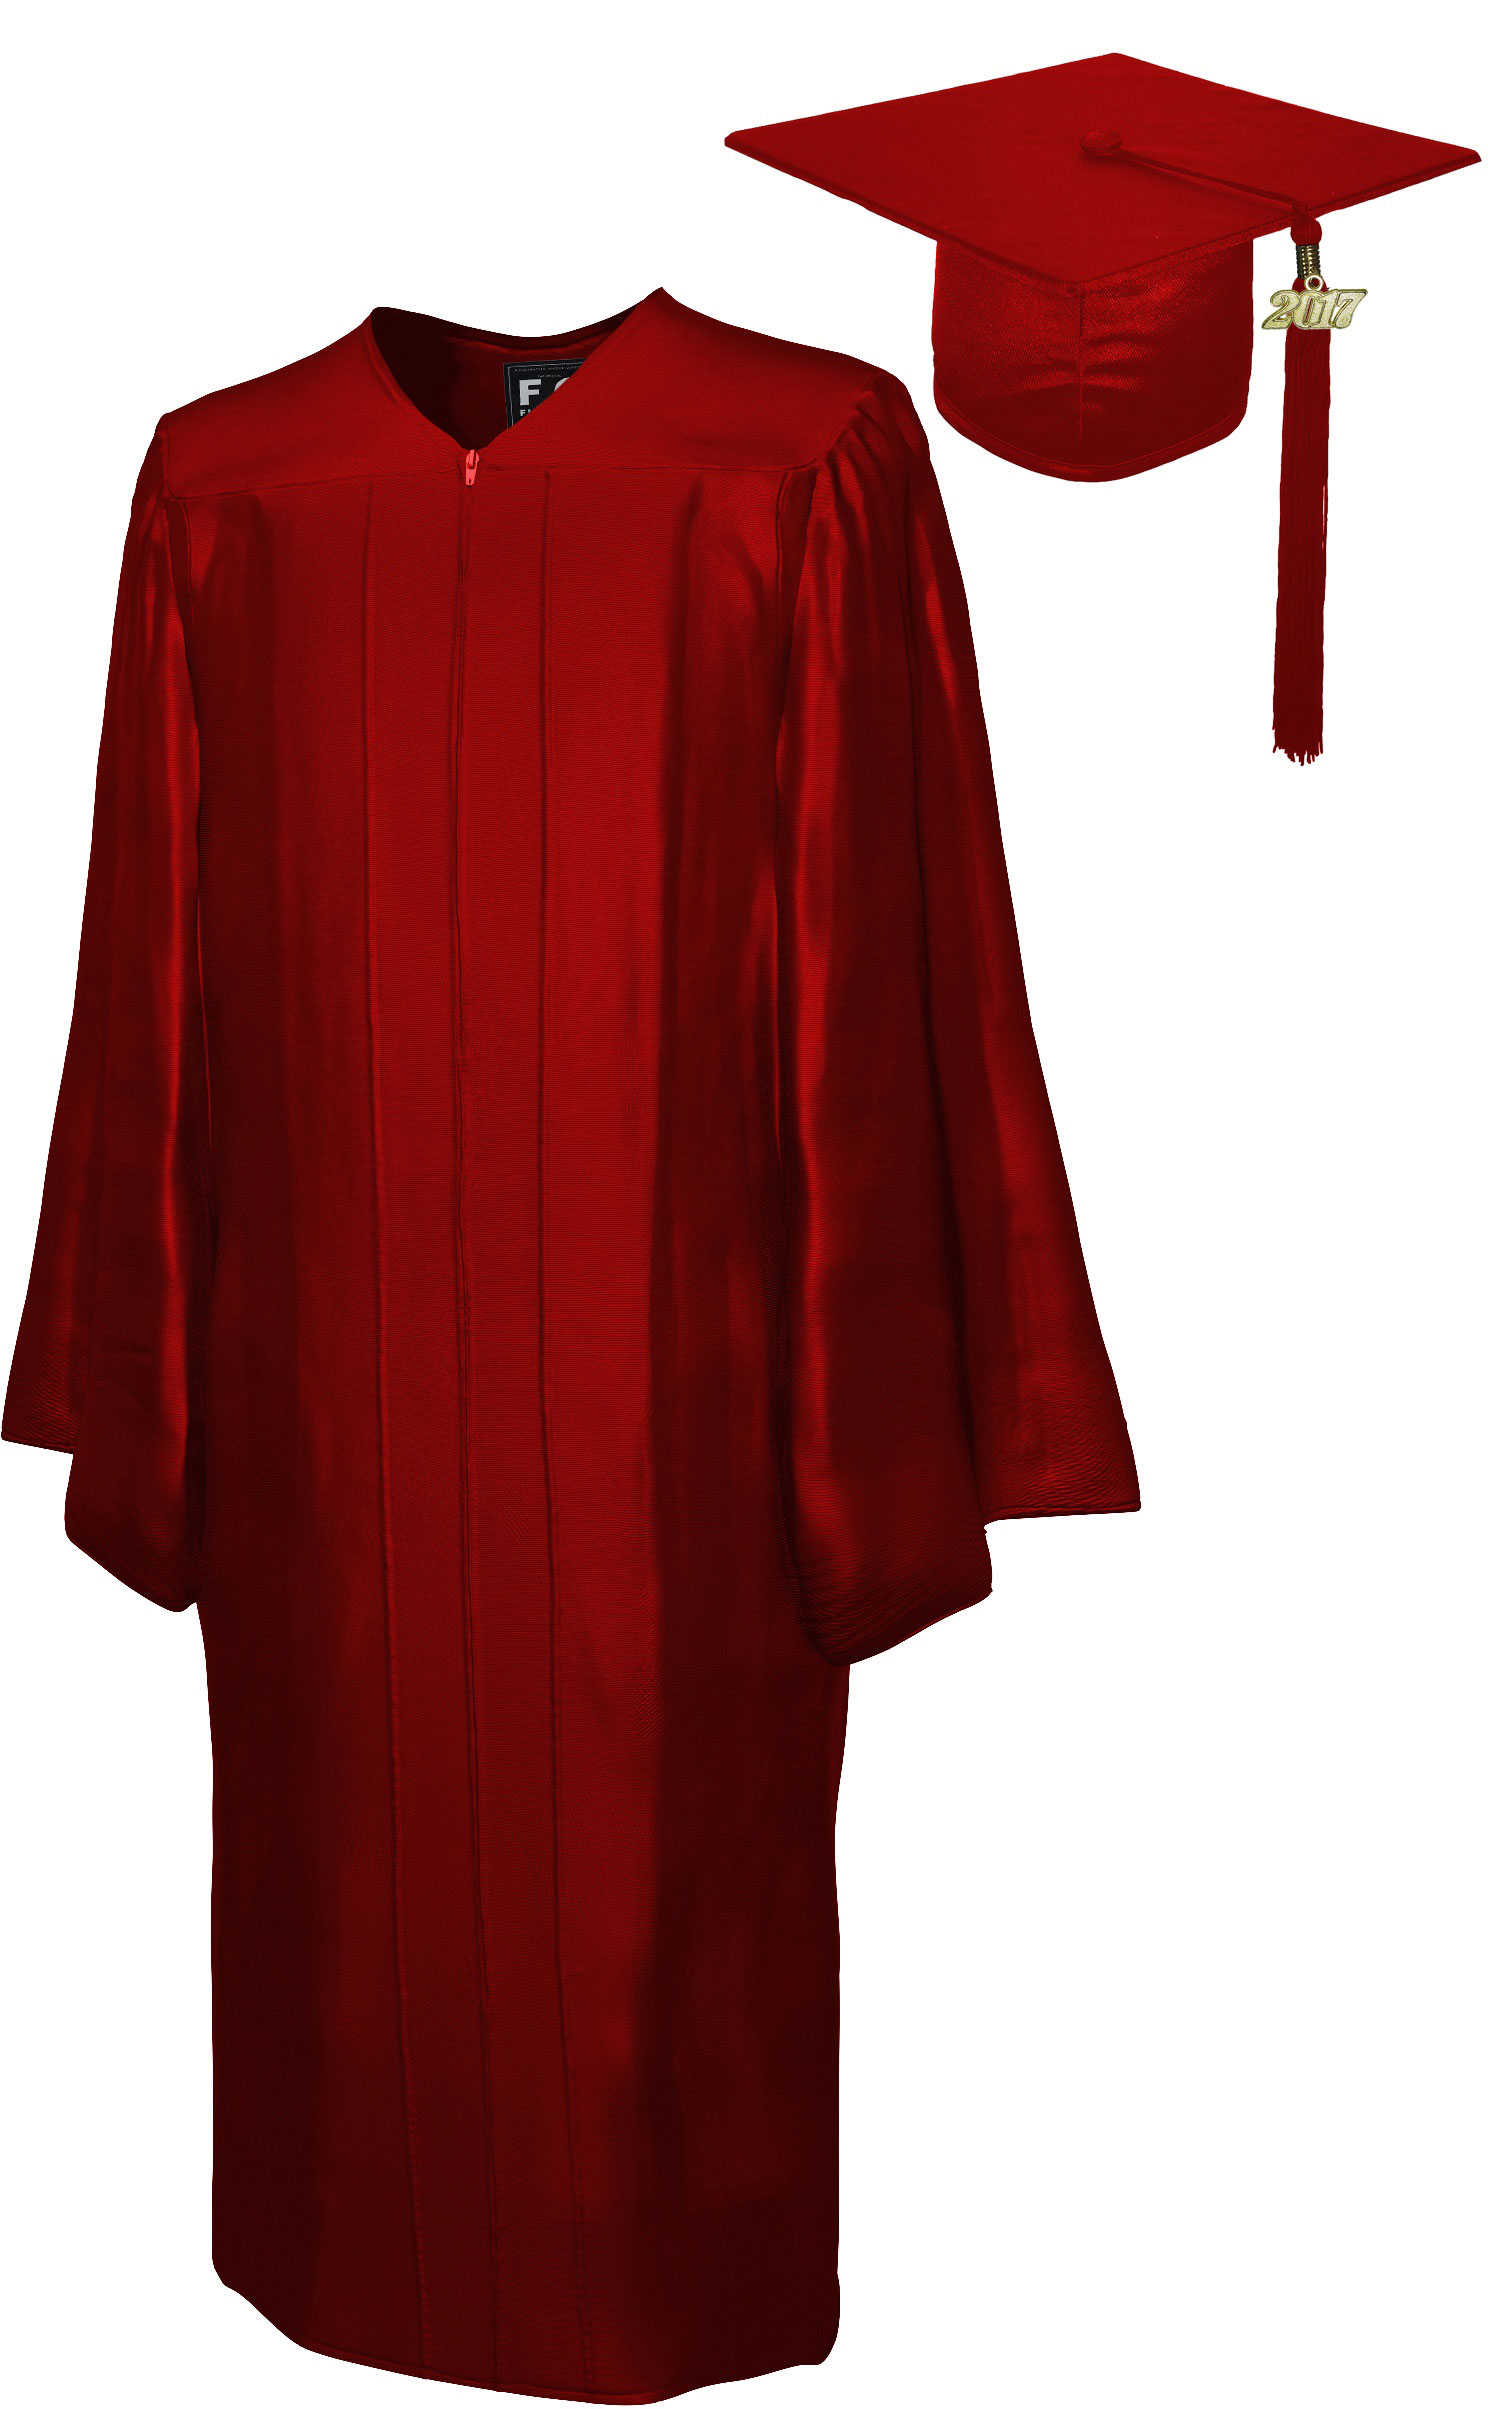 SHINY MAROON RED CAP & GOWN HIGH SCHOOL GRADUATION SET-rs4251465601806